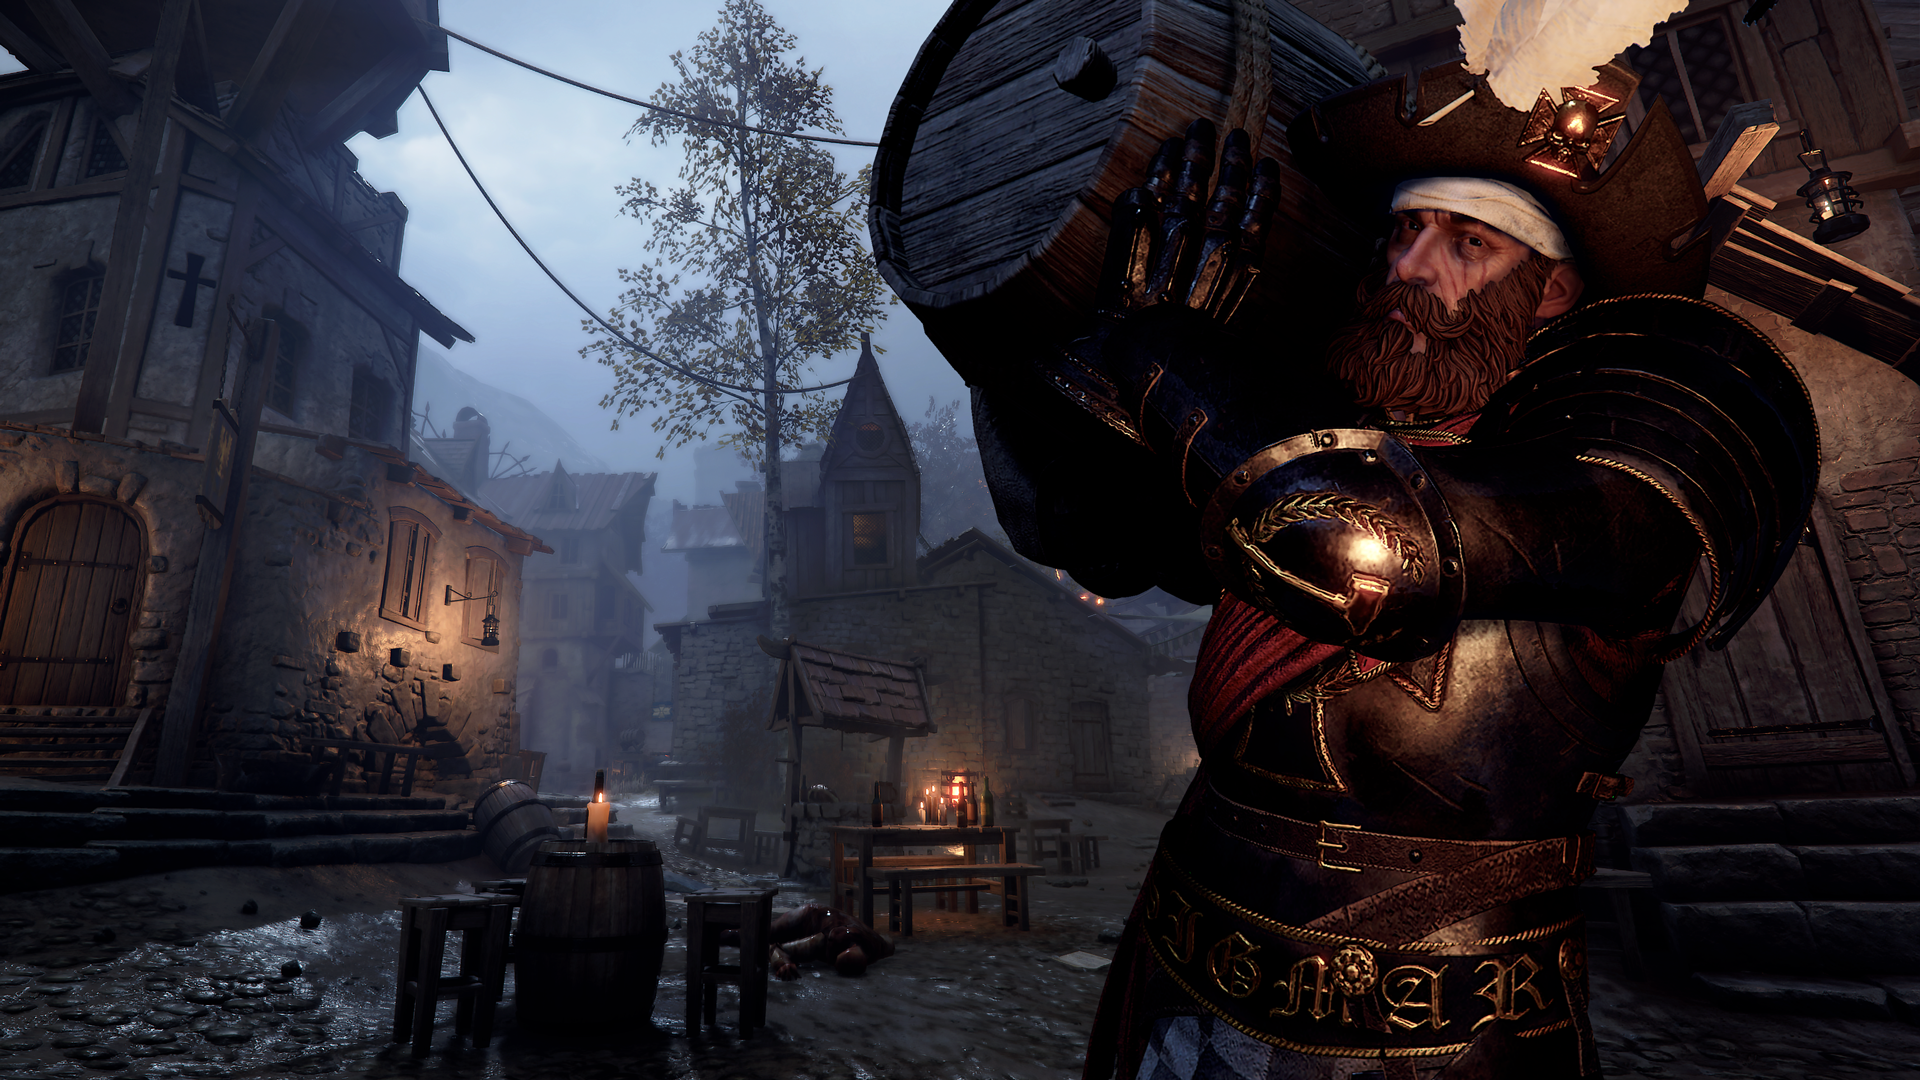 Let's celebrate! - Welcome to the 1-Year Anniversary of Warhammer: Vermintide 2's release on PC. Join us for a week filled with streams, cake, events and much more leading up to March 8 when we bring the celebration in-game!